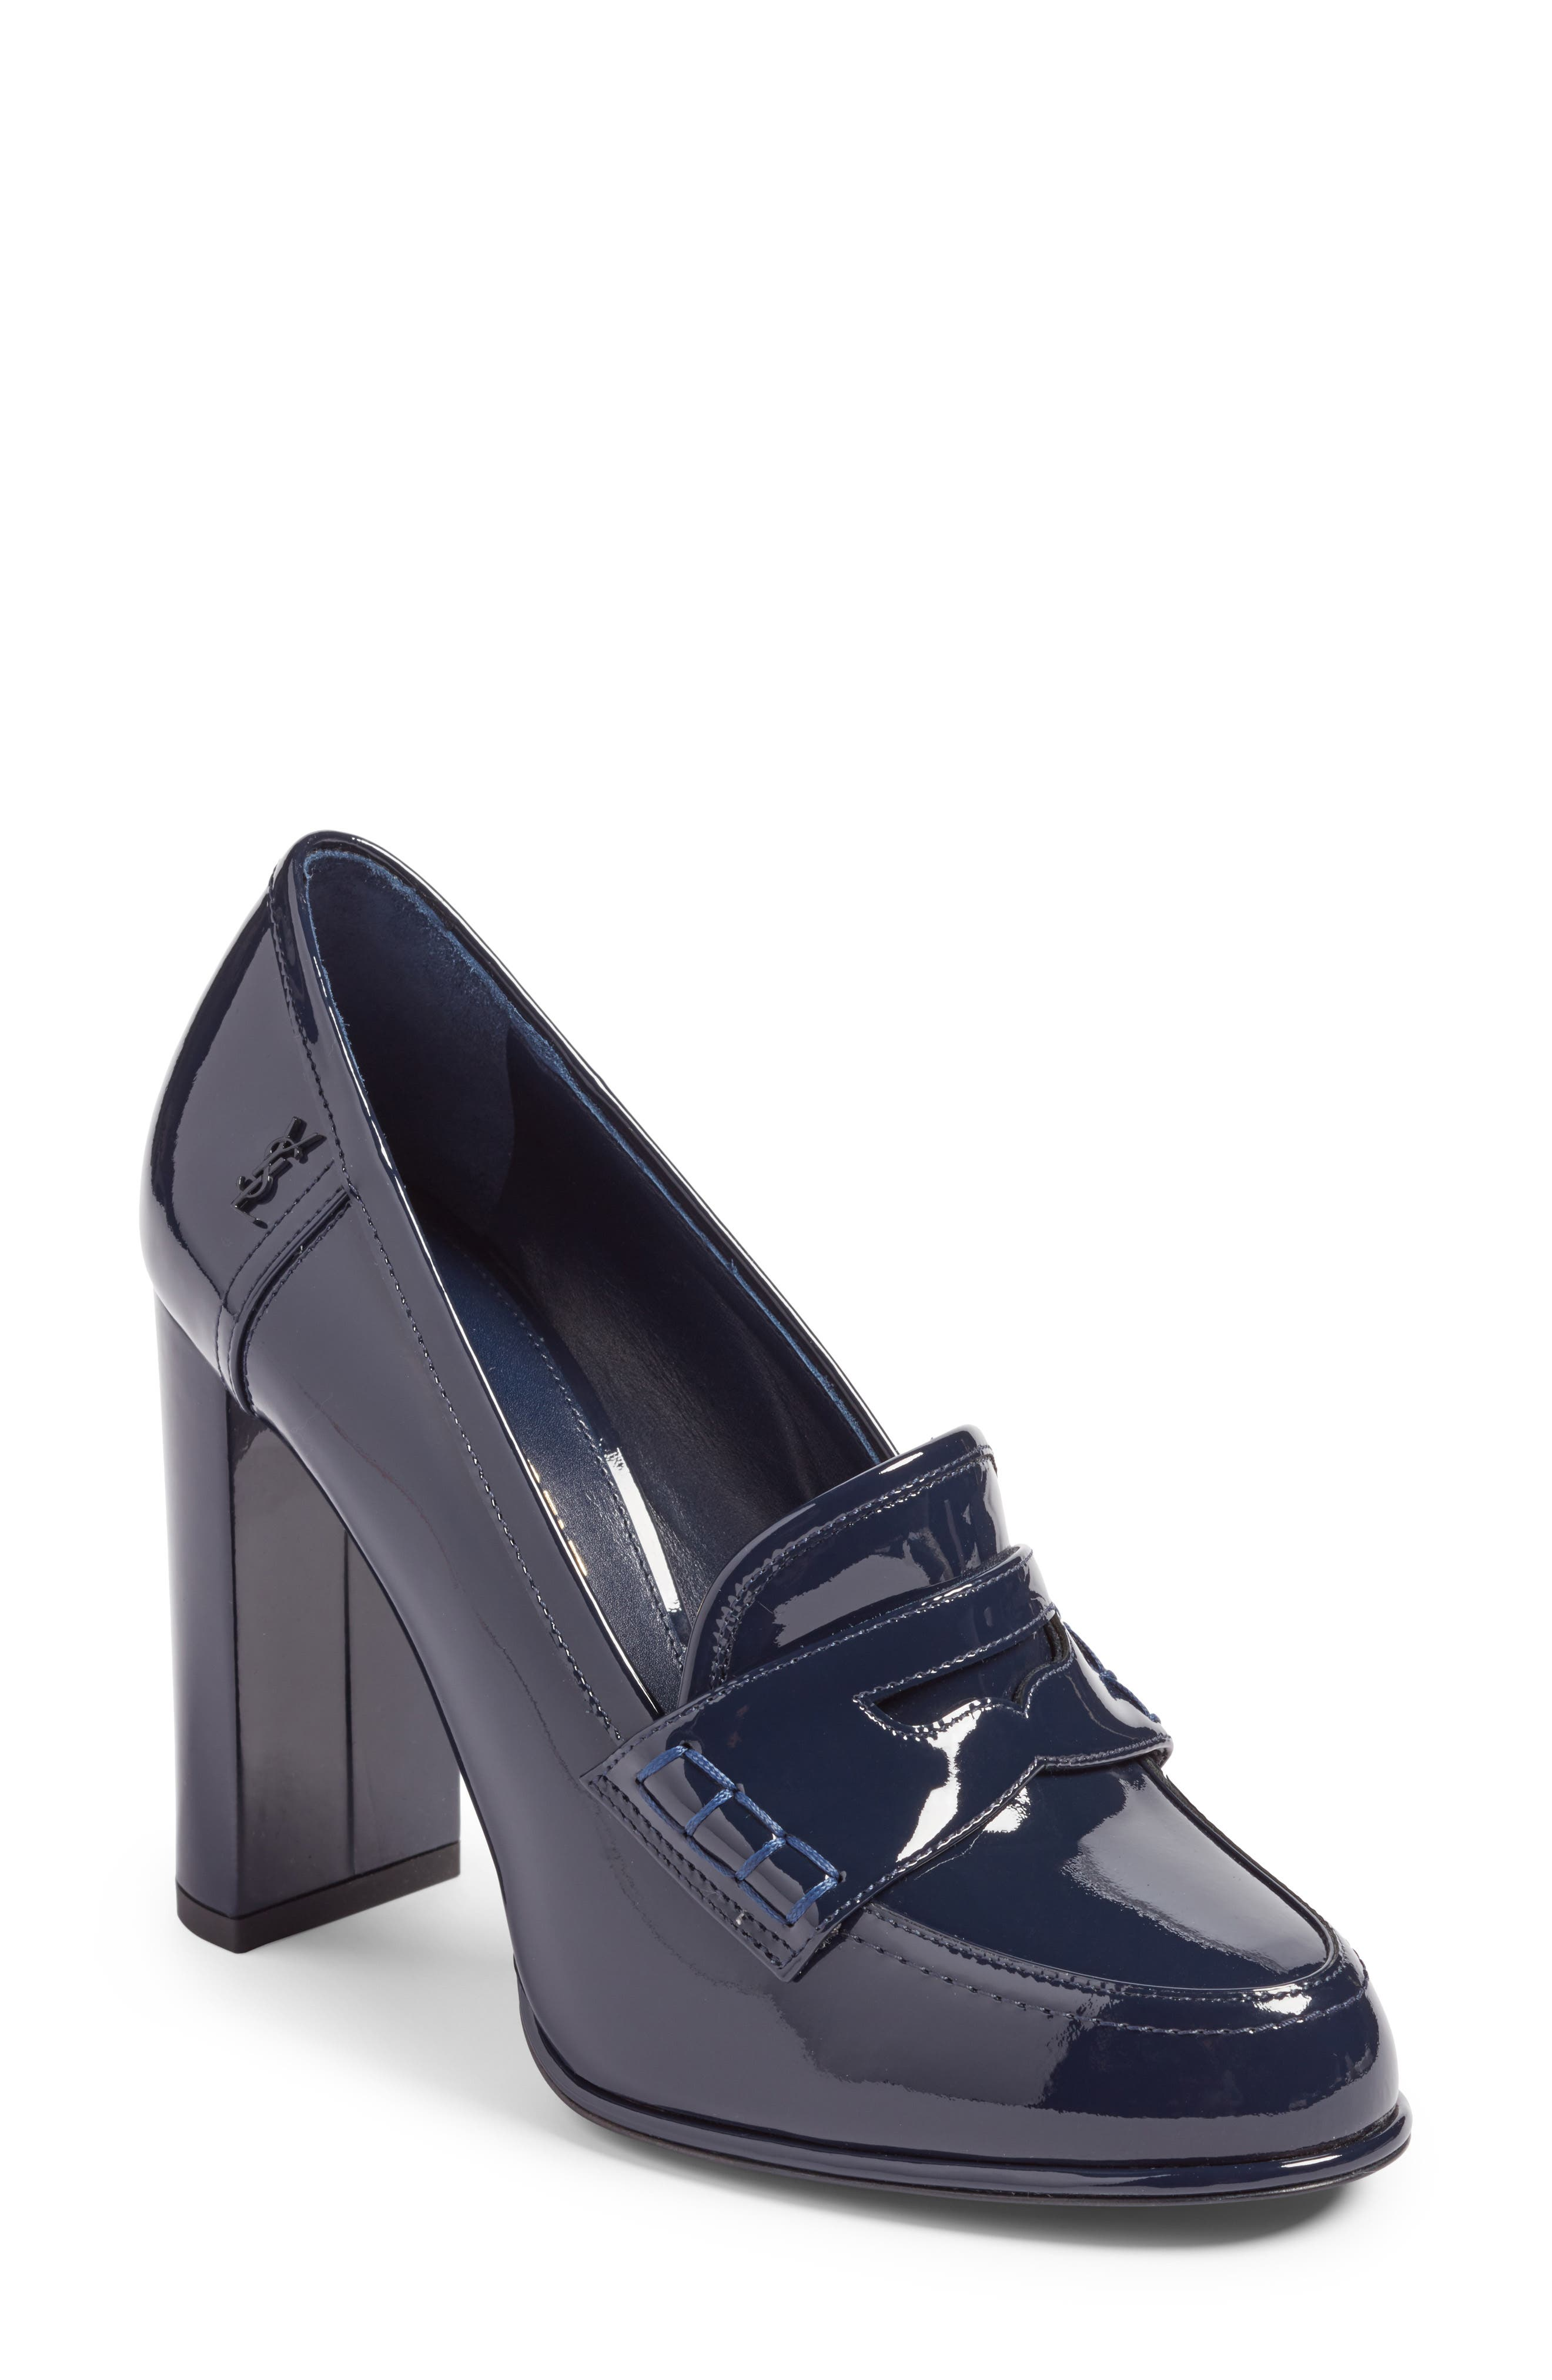 Saint Laurent Universite Loafer Pump (Women)